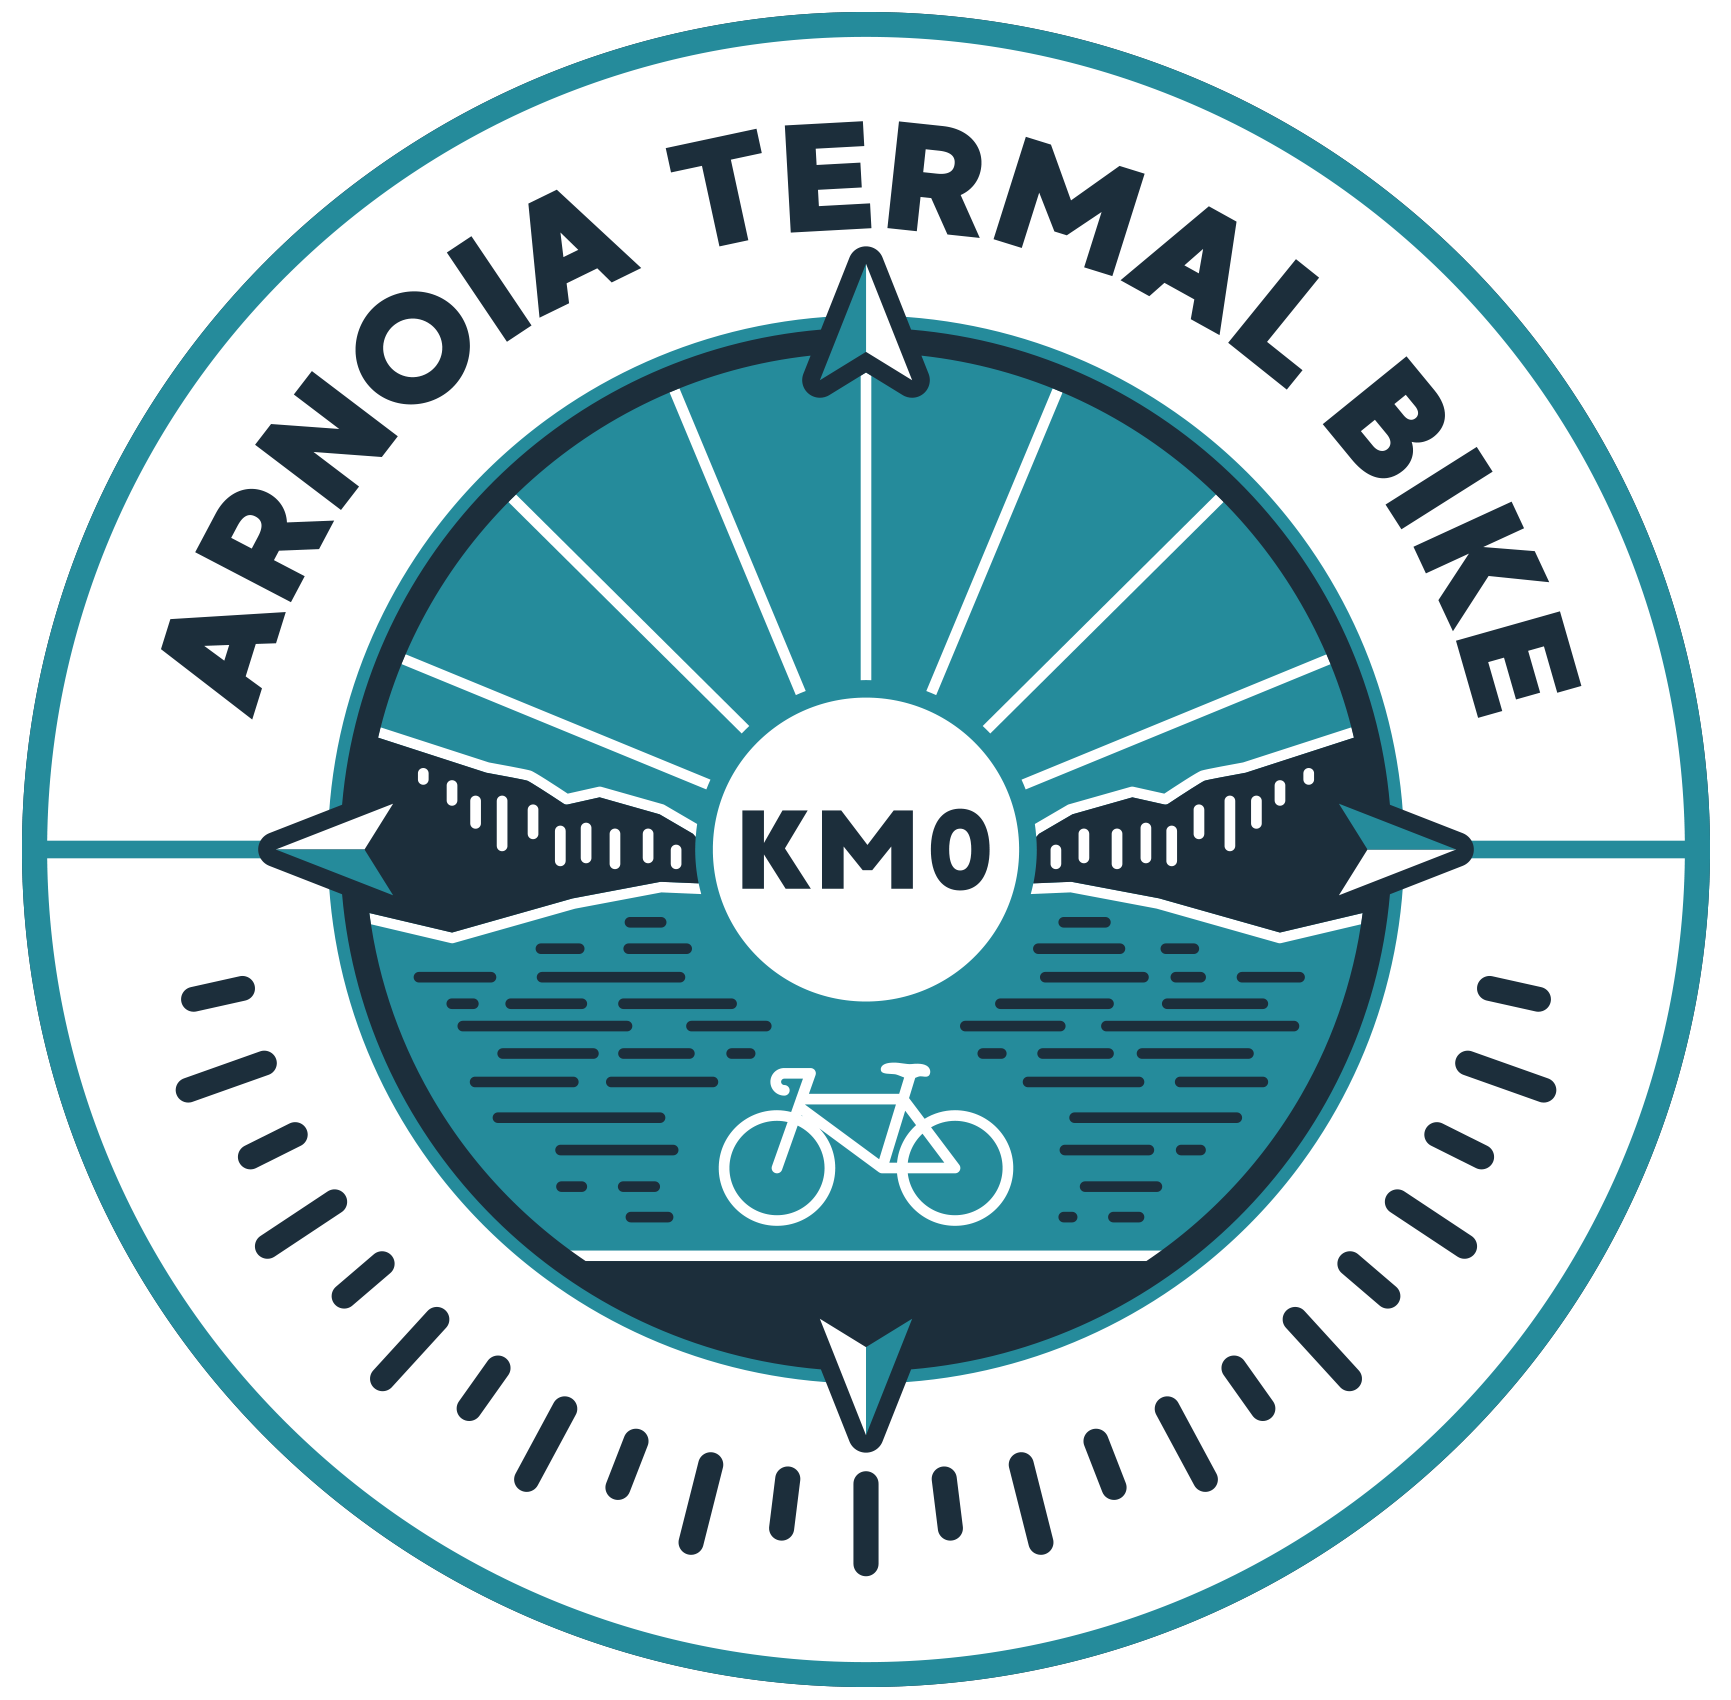 logo Arnoia Termal bike km0